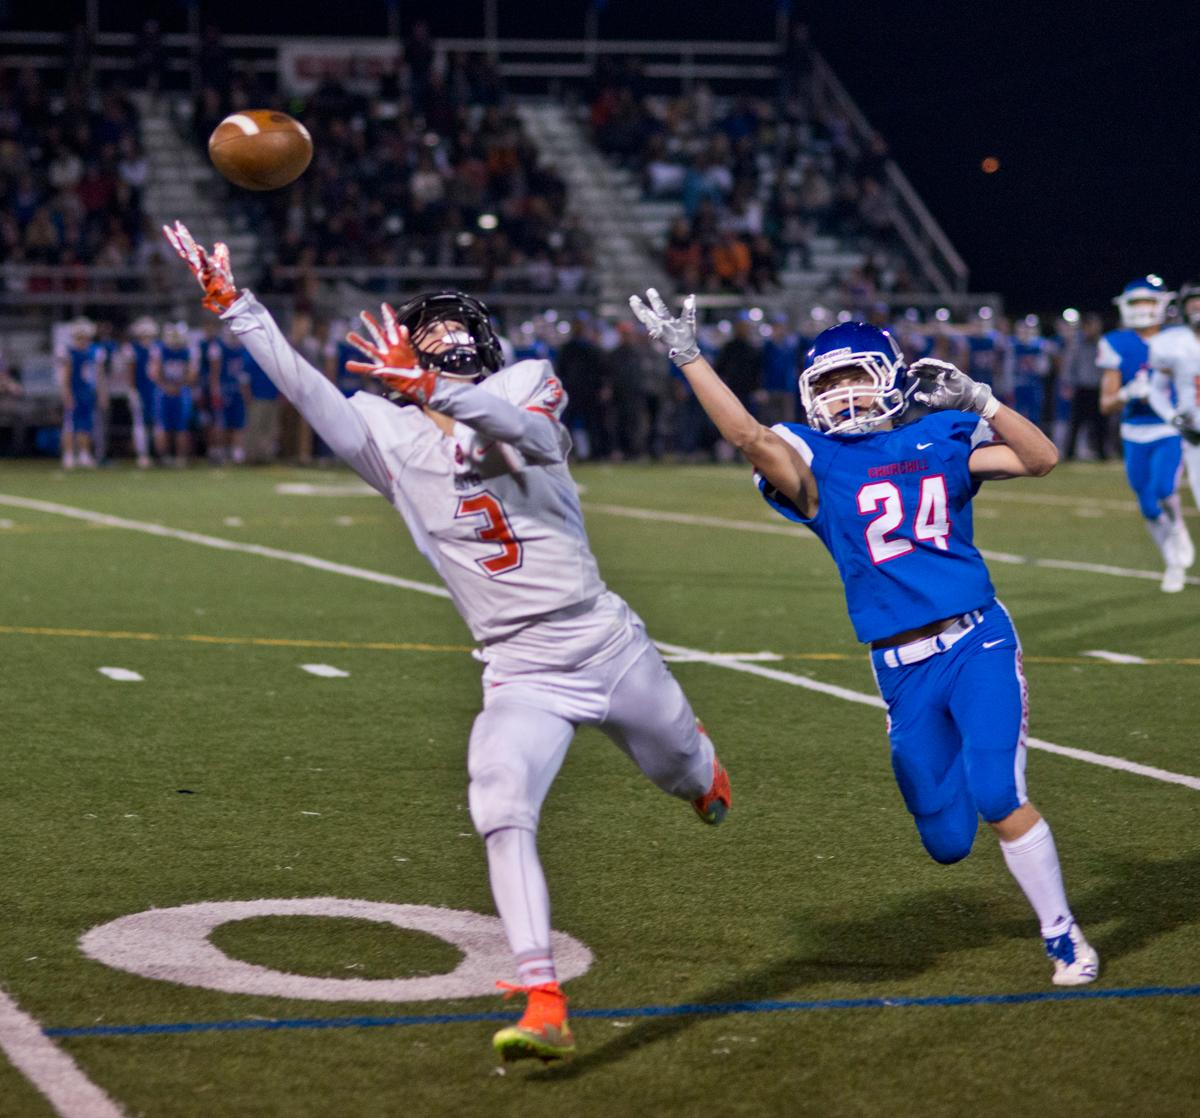 Crater Comets wide receiver Bailee Robles (#3) attempts to haul in a long pass as Churchill Lancers defensive back Evan Powell (#24) is unable to tip the ball. Churchill defeated Crater 63-21 on Friday at their homecoming game. Churchill remains undefeated with a conference record of 9-0. Photo by Dan Morrison, Oregon News Lab